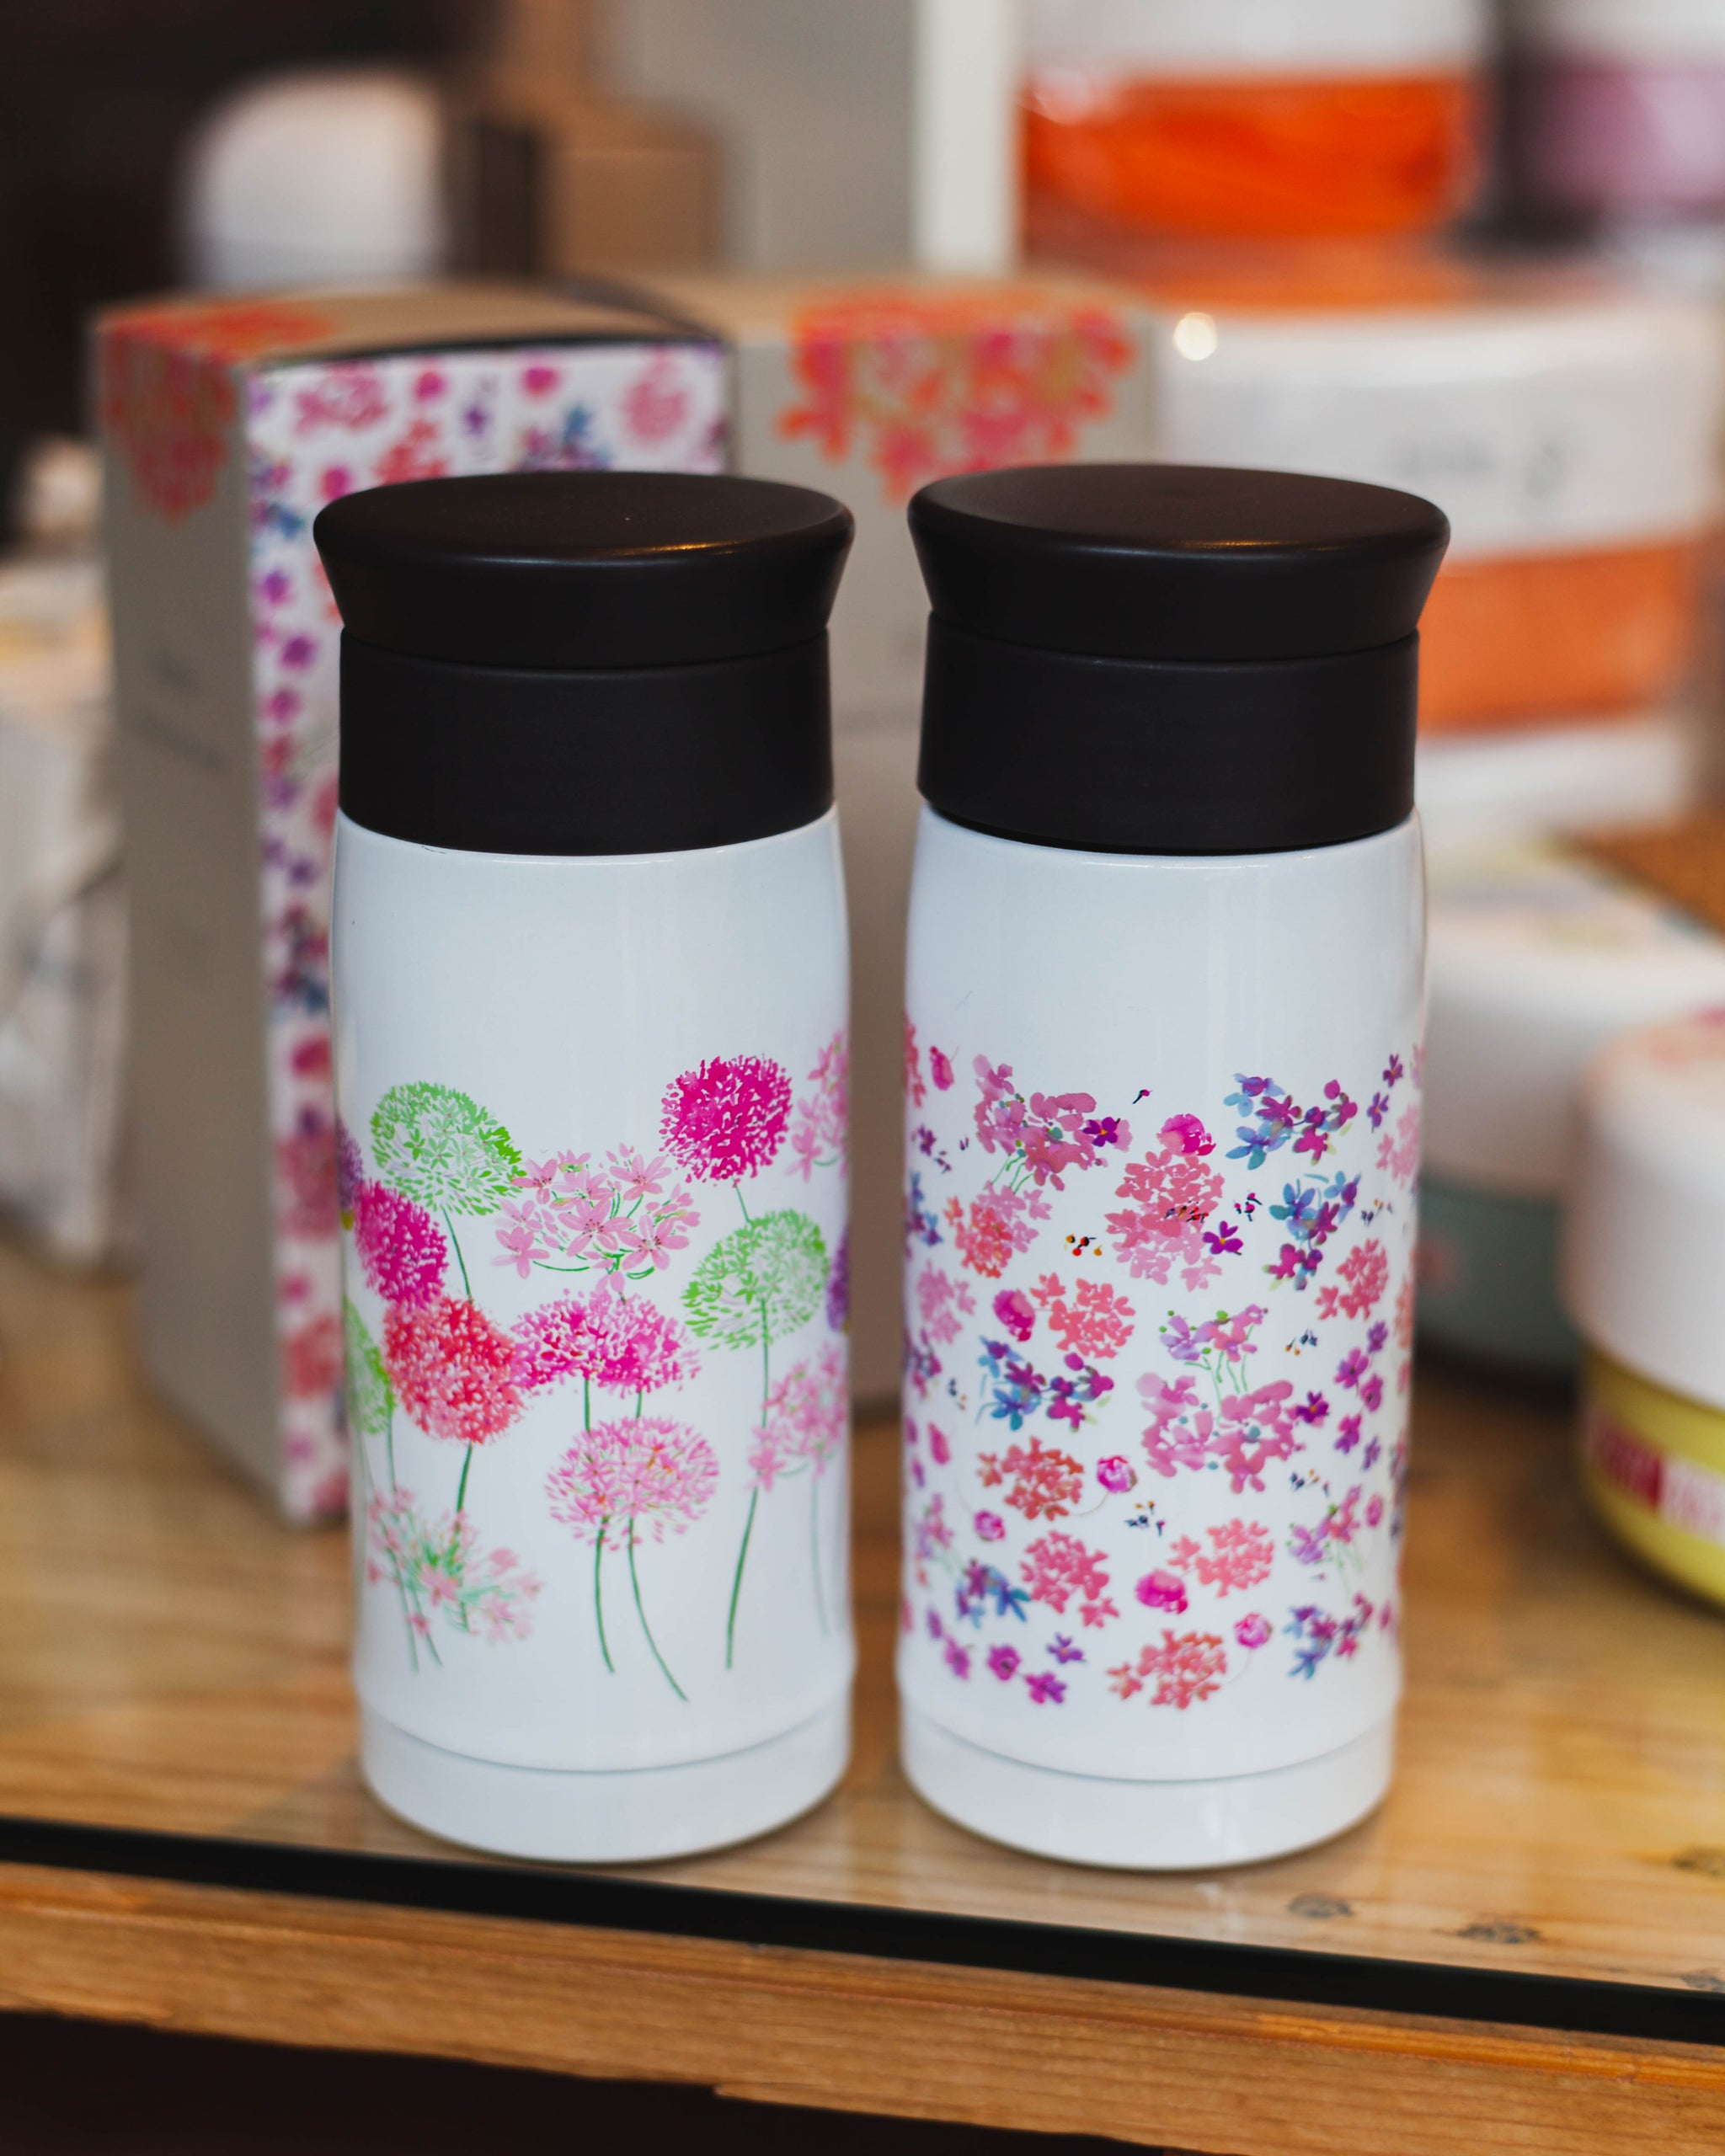 Spring Bouquet Stainless Steel Bottle | Rhododendron by Takenaka - Bento&co Japanese Bento Lunch Boxes and Kitchenware Specialists